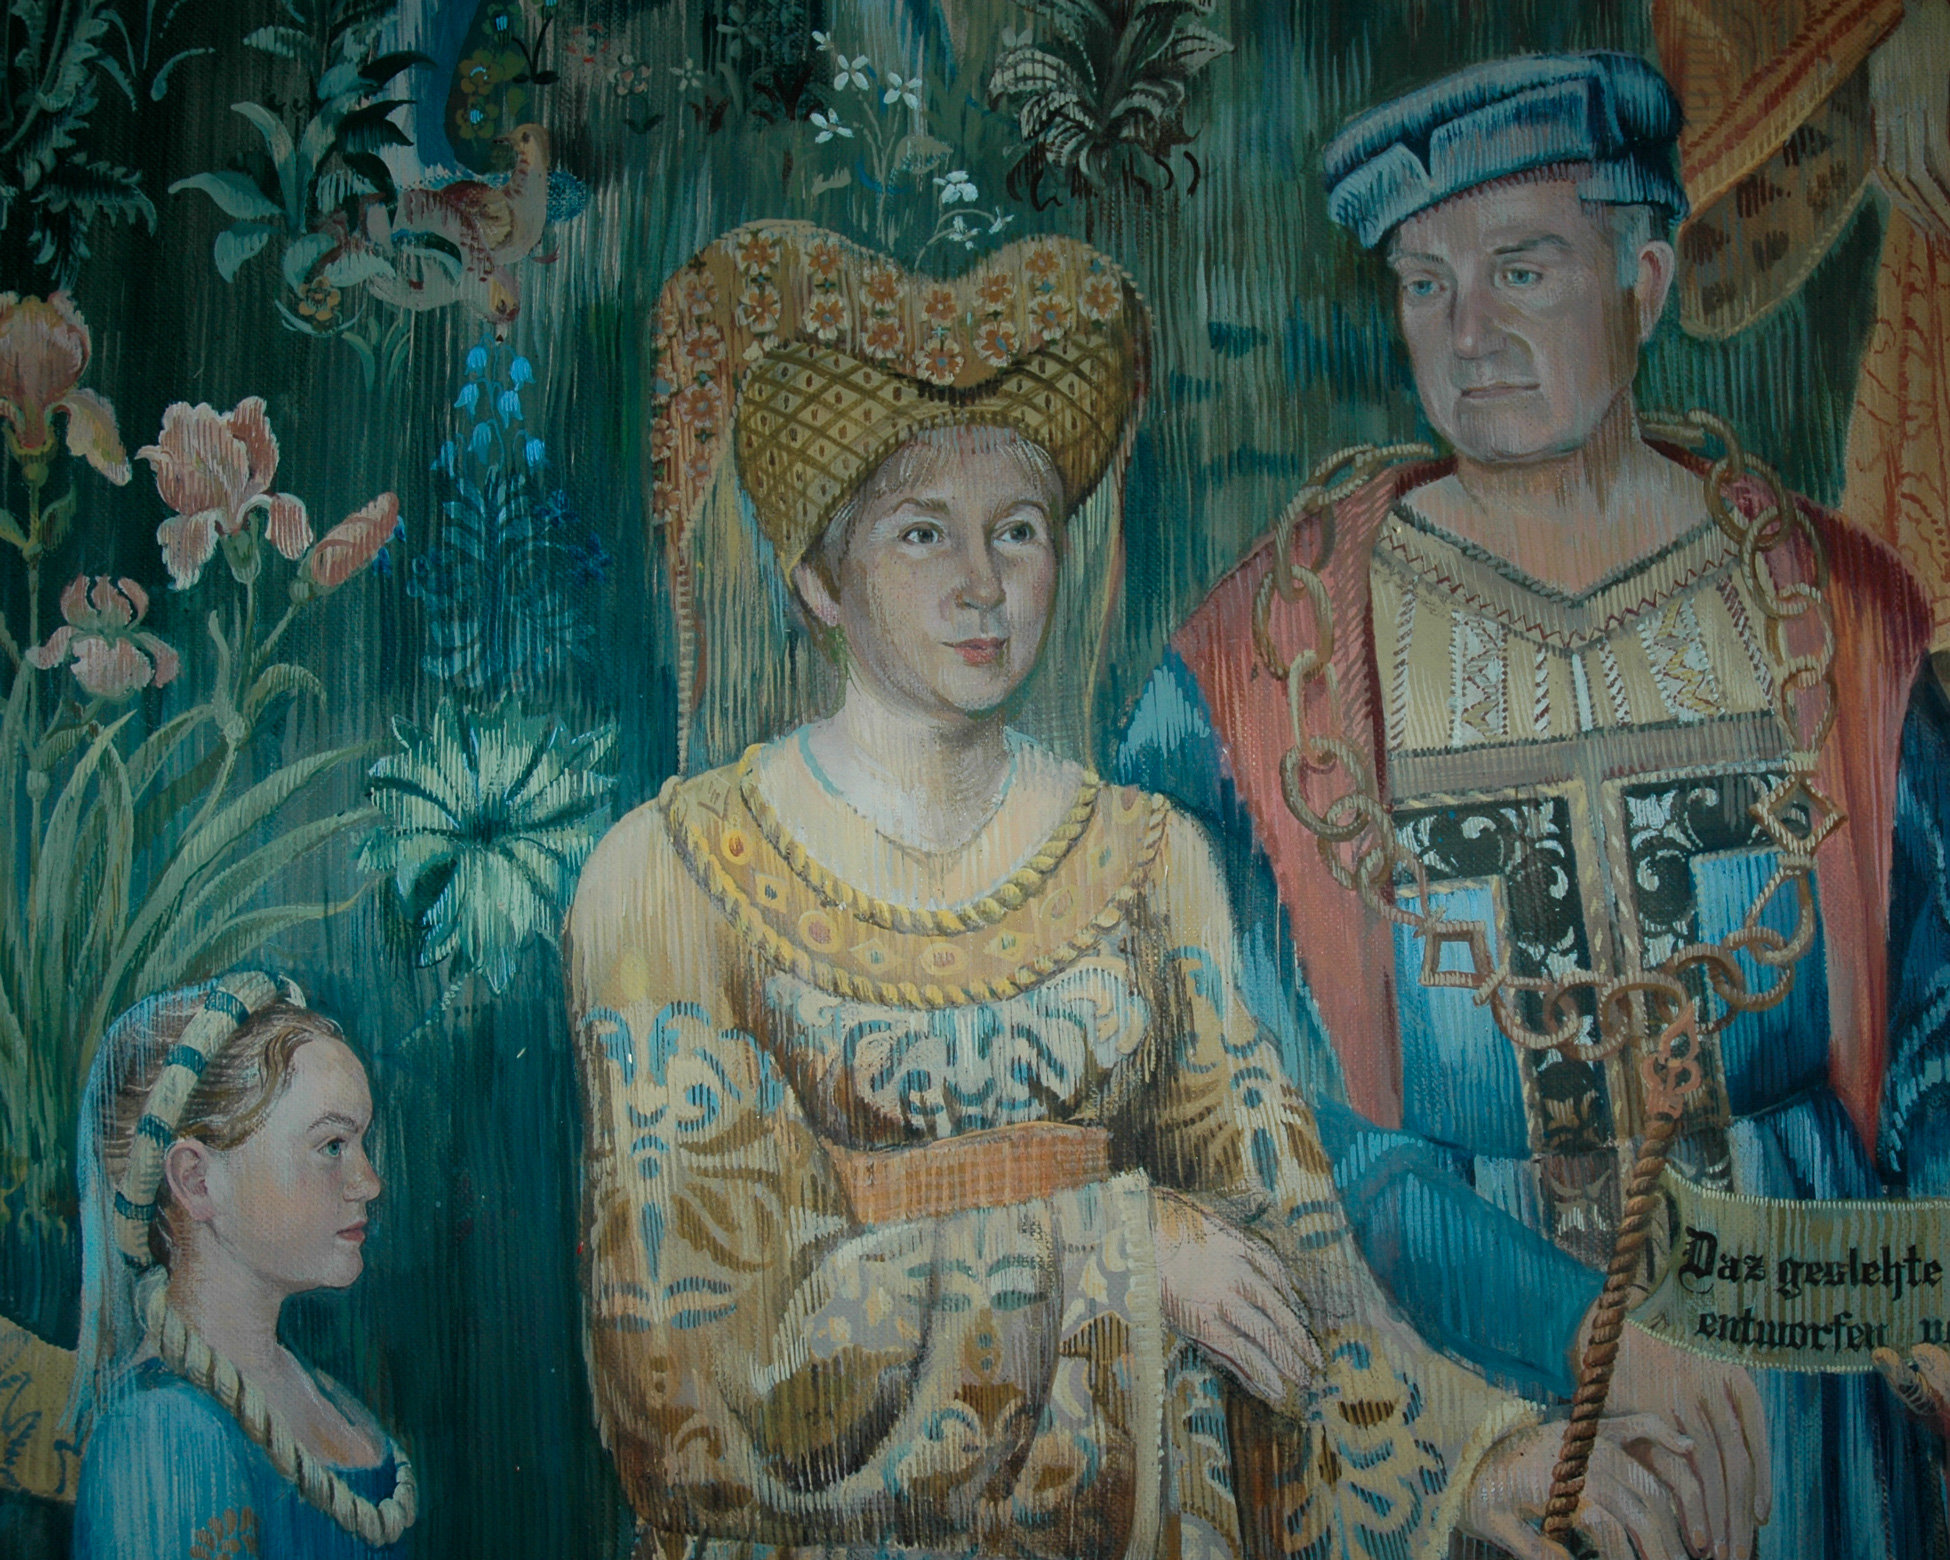 Tapestry mural with husband and wife in medieval costume